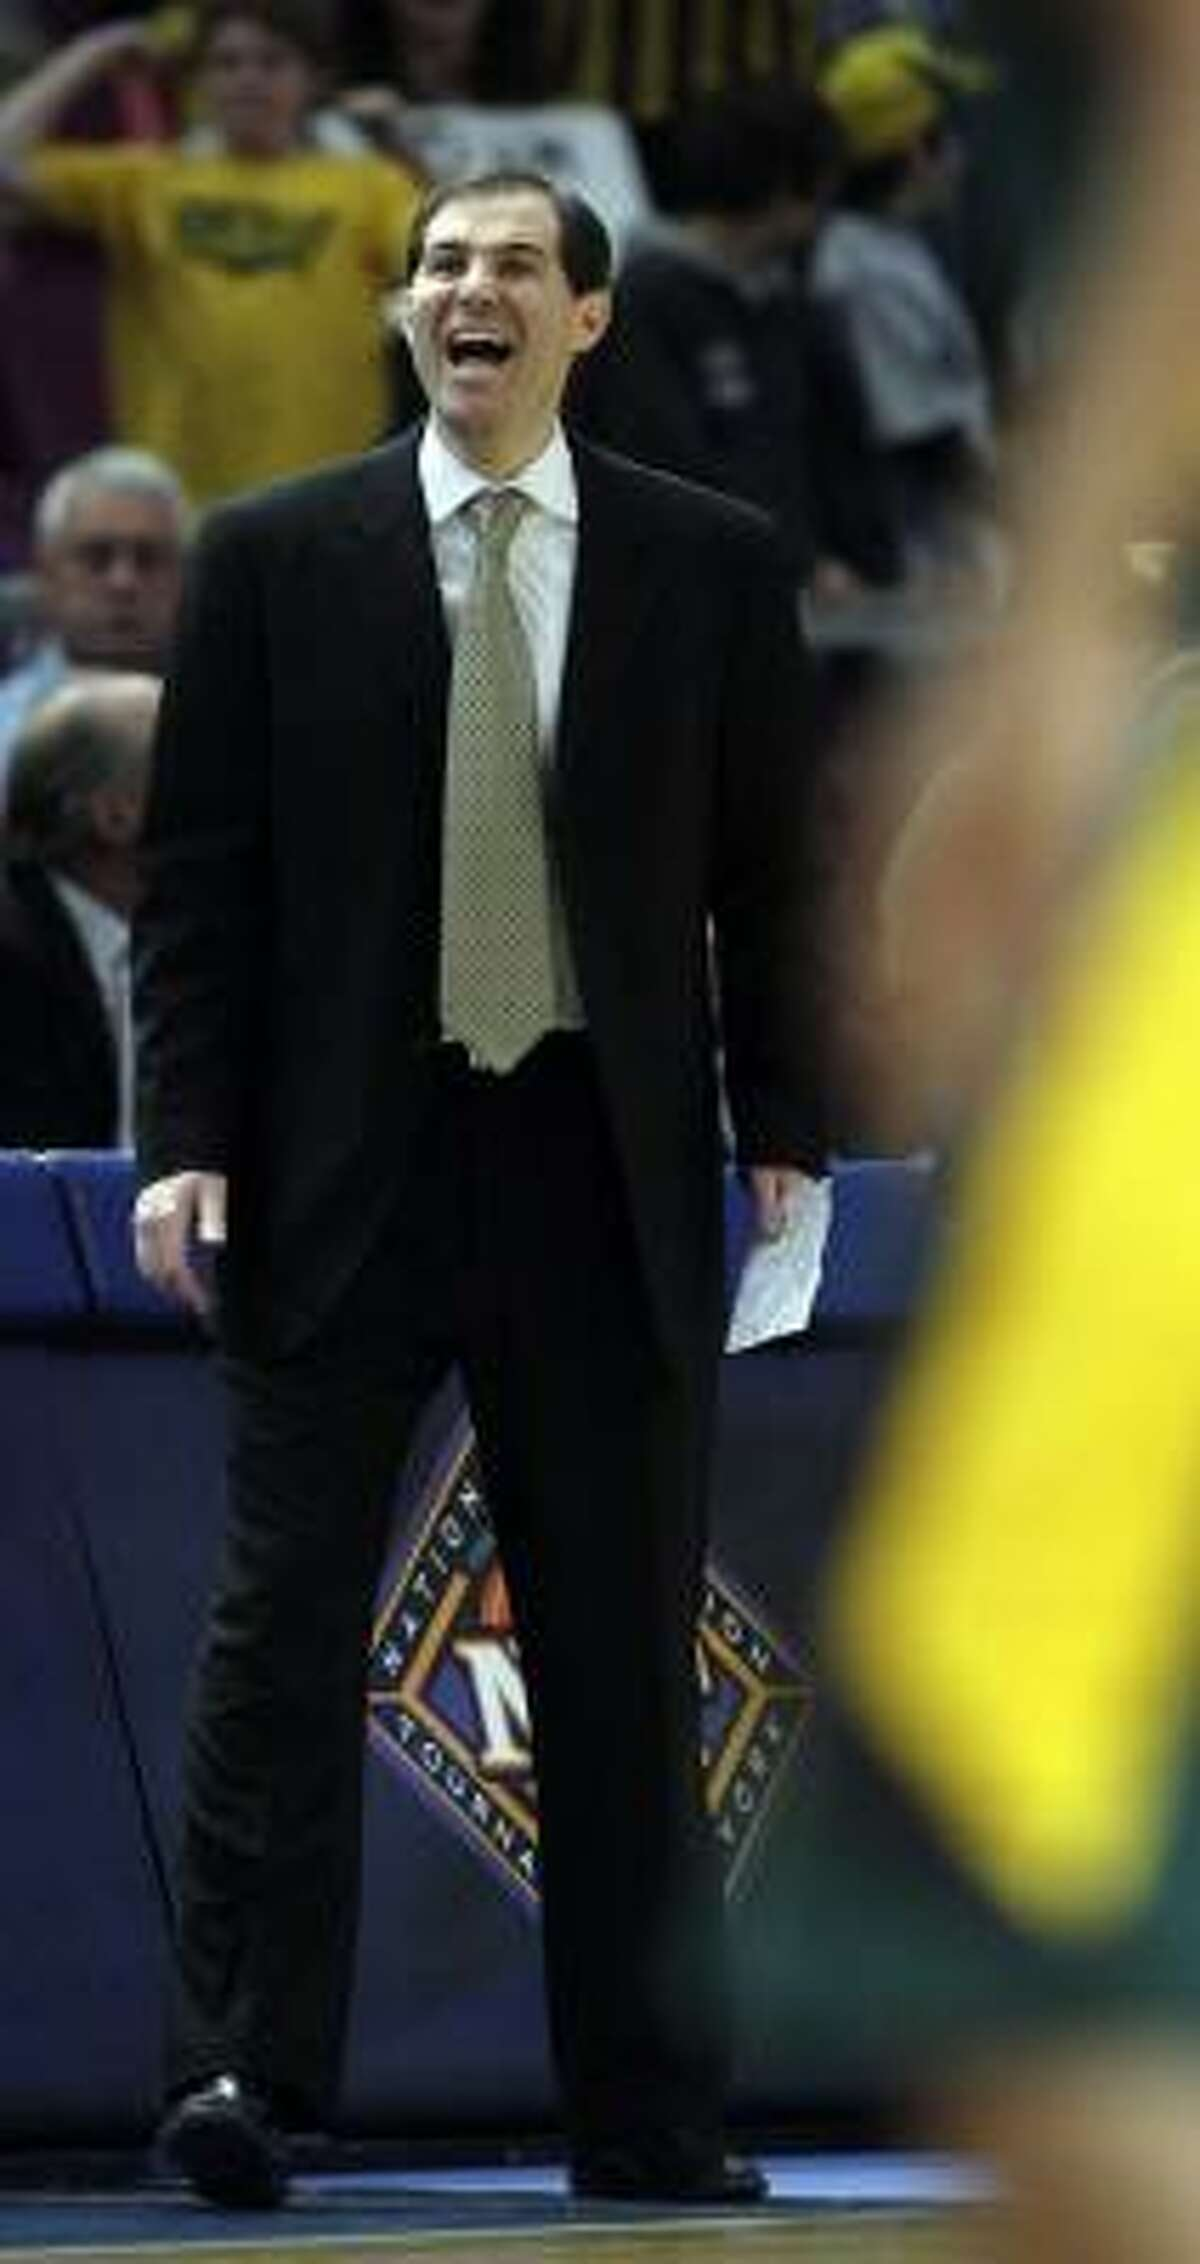 Baylor's head coach Scott Drew yells to his team during the second half of the NIT semifinal college basketball game against San Diego State. Baylor won the game 76-62.